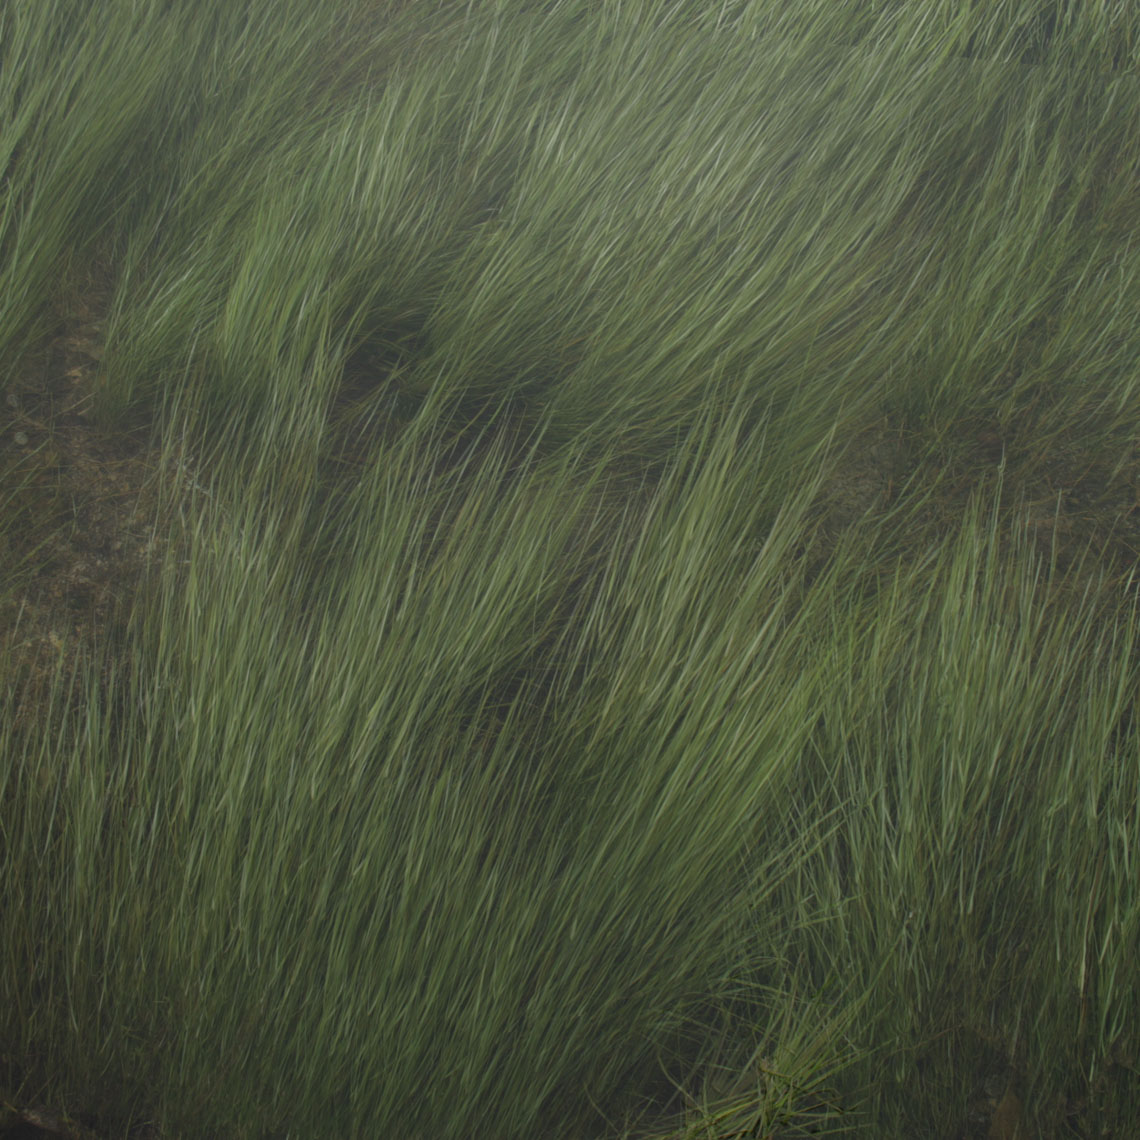 rivergrass